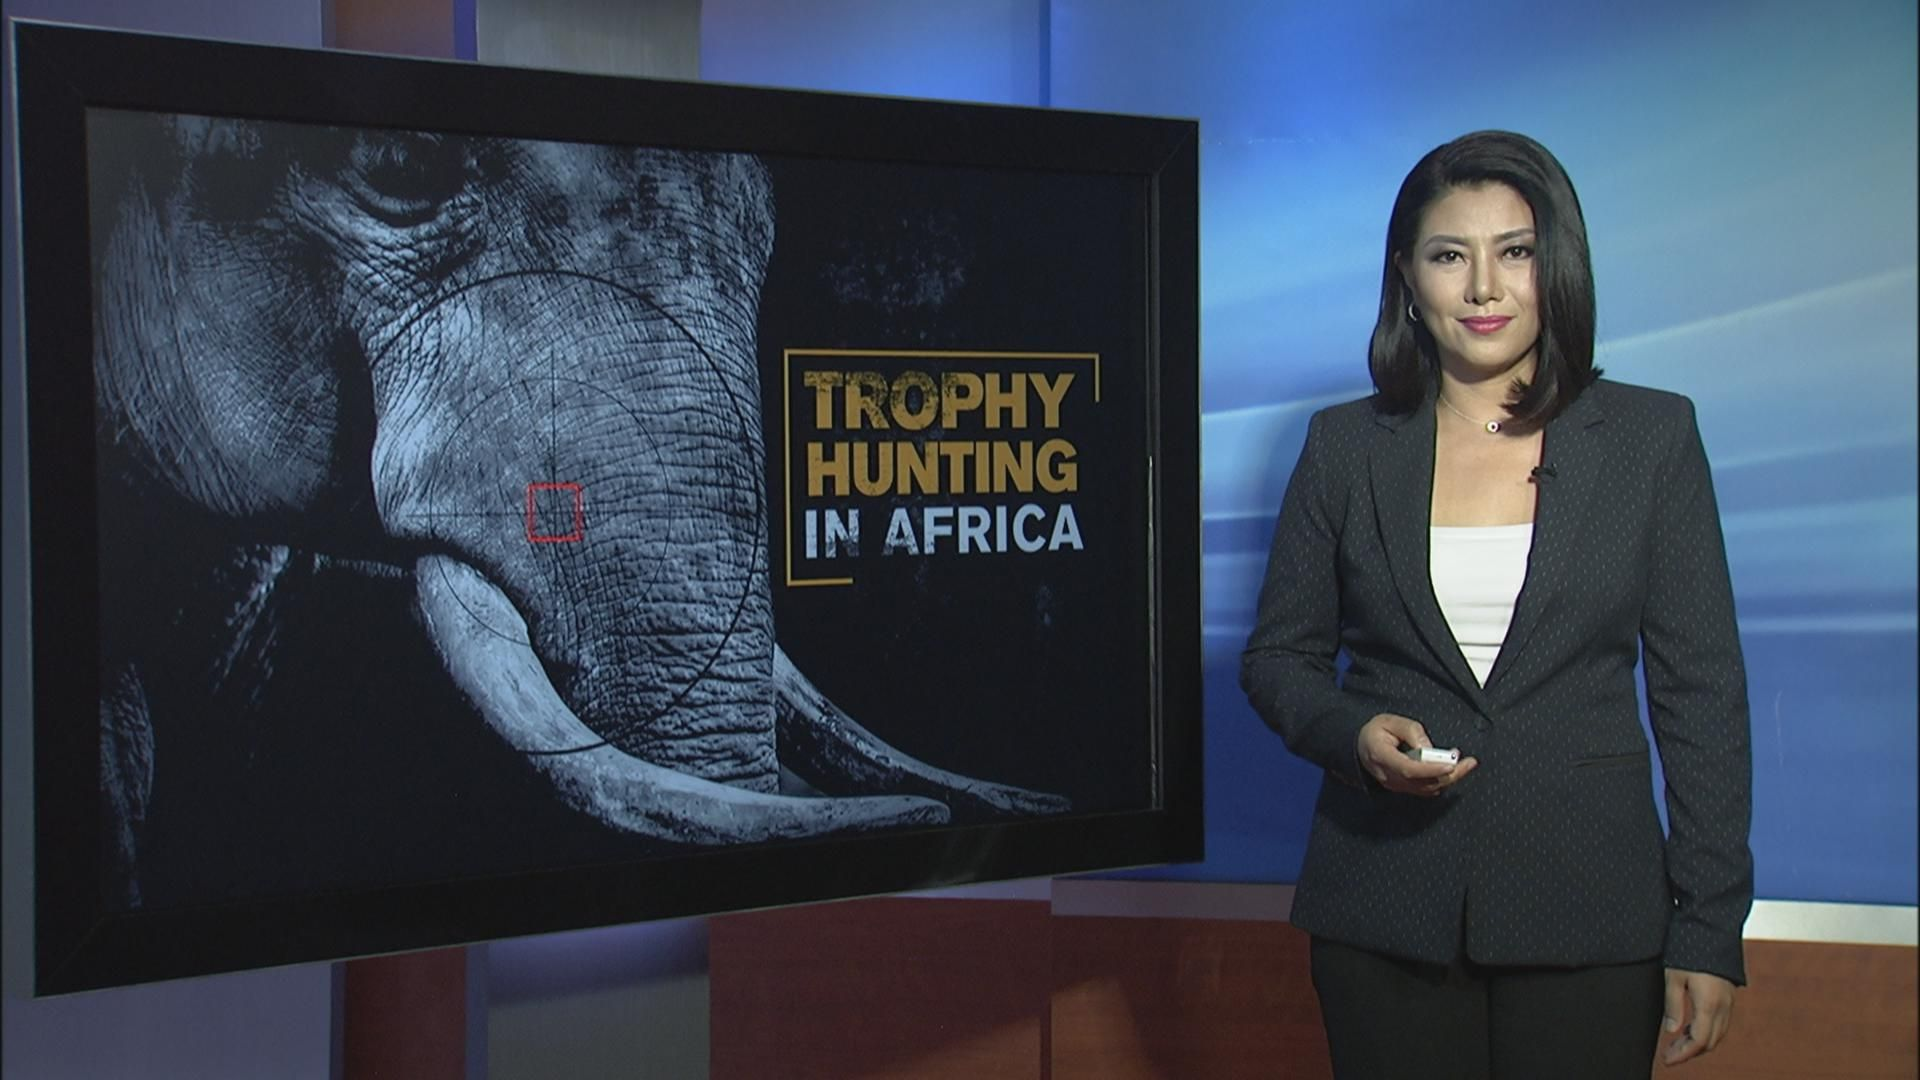 Talk Africa: Trophy Hunting in Africa